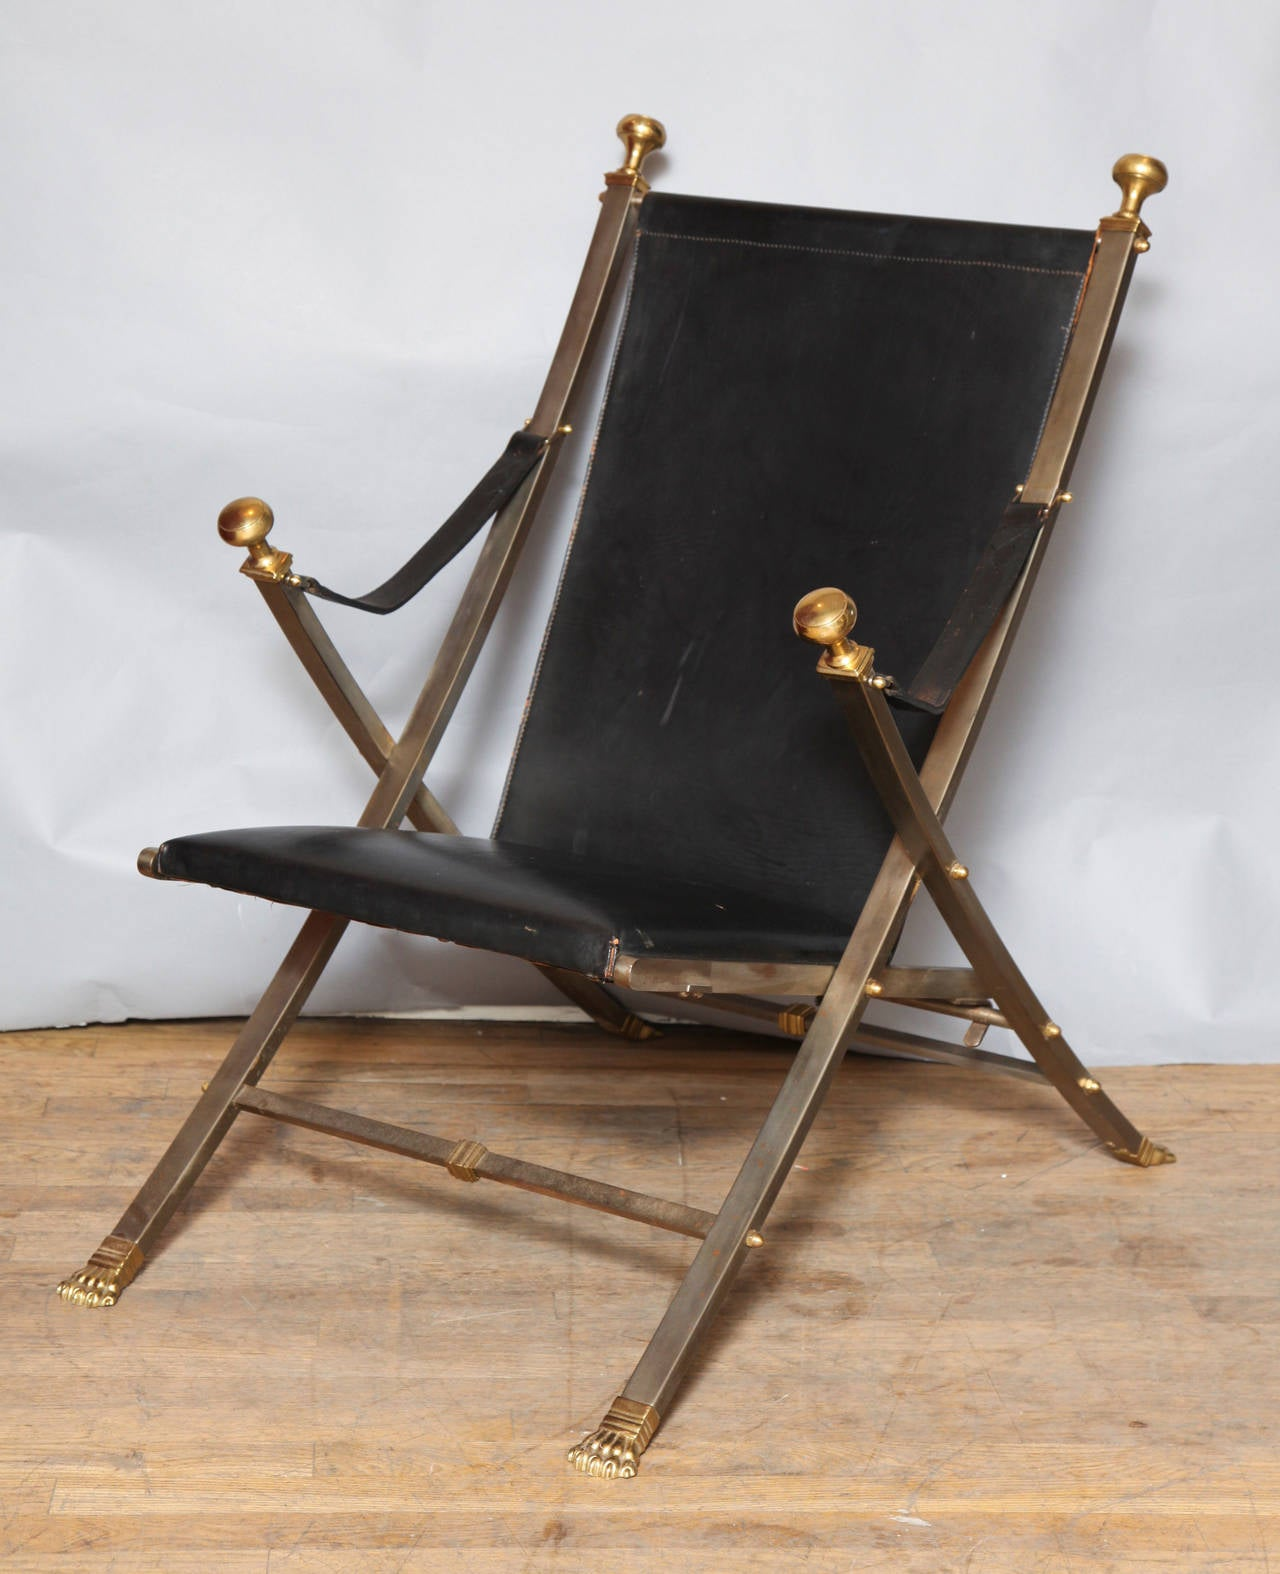 A pair of Jansen-style Campaign chairs, the X-shaped frames with leather upholstered seats and backs. The steel frames accented with brass lines, paw feet, and finials. The same model was fabricated by Jansen and documented in the Jansen monograph